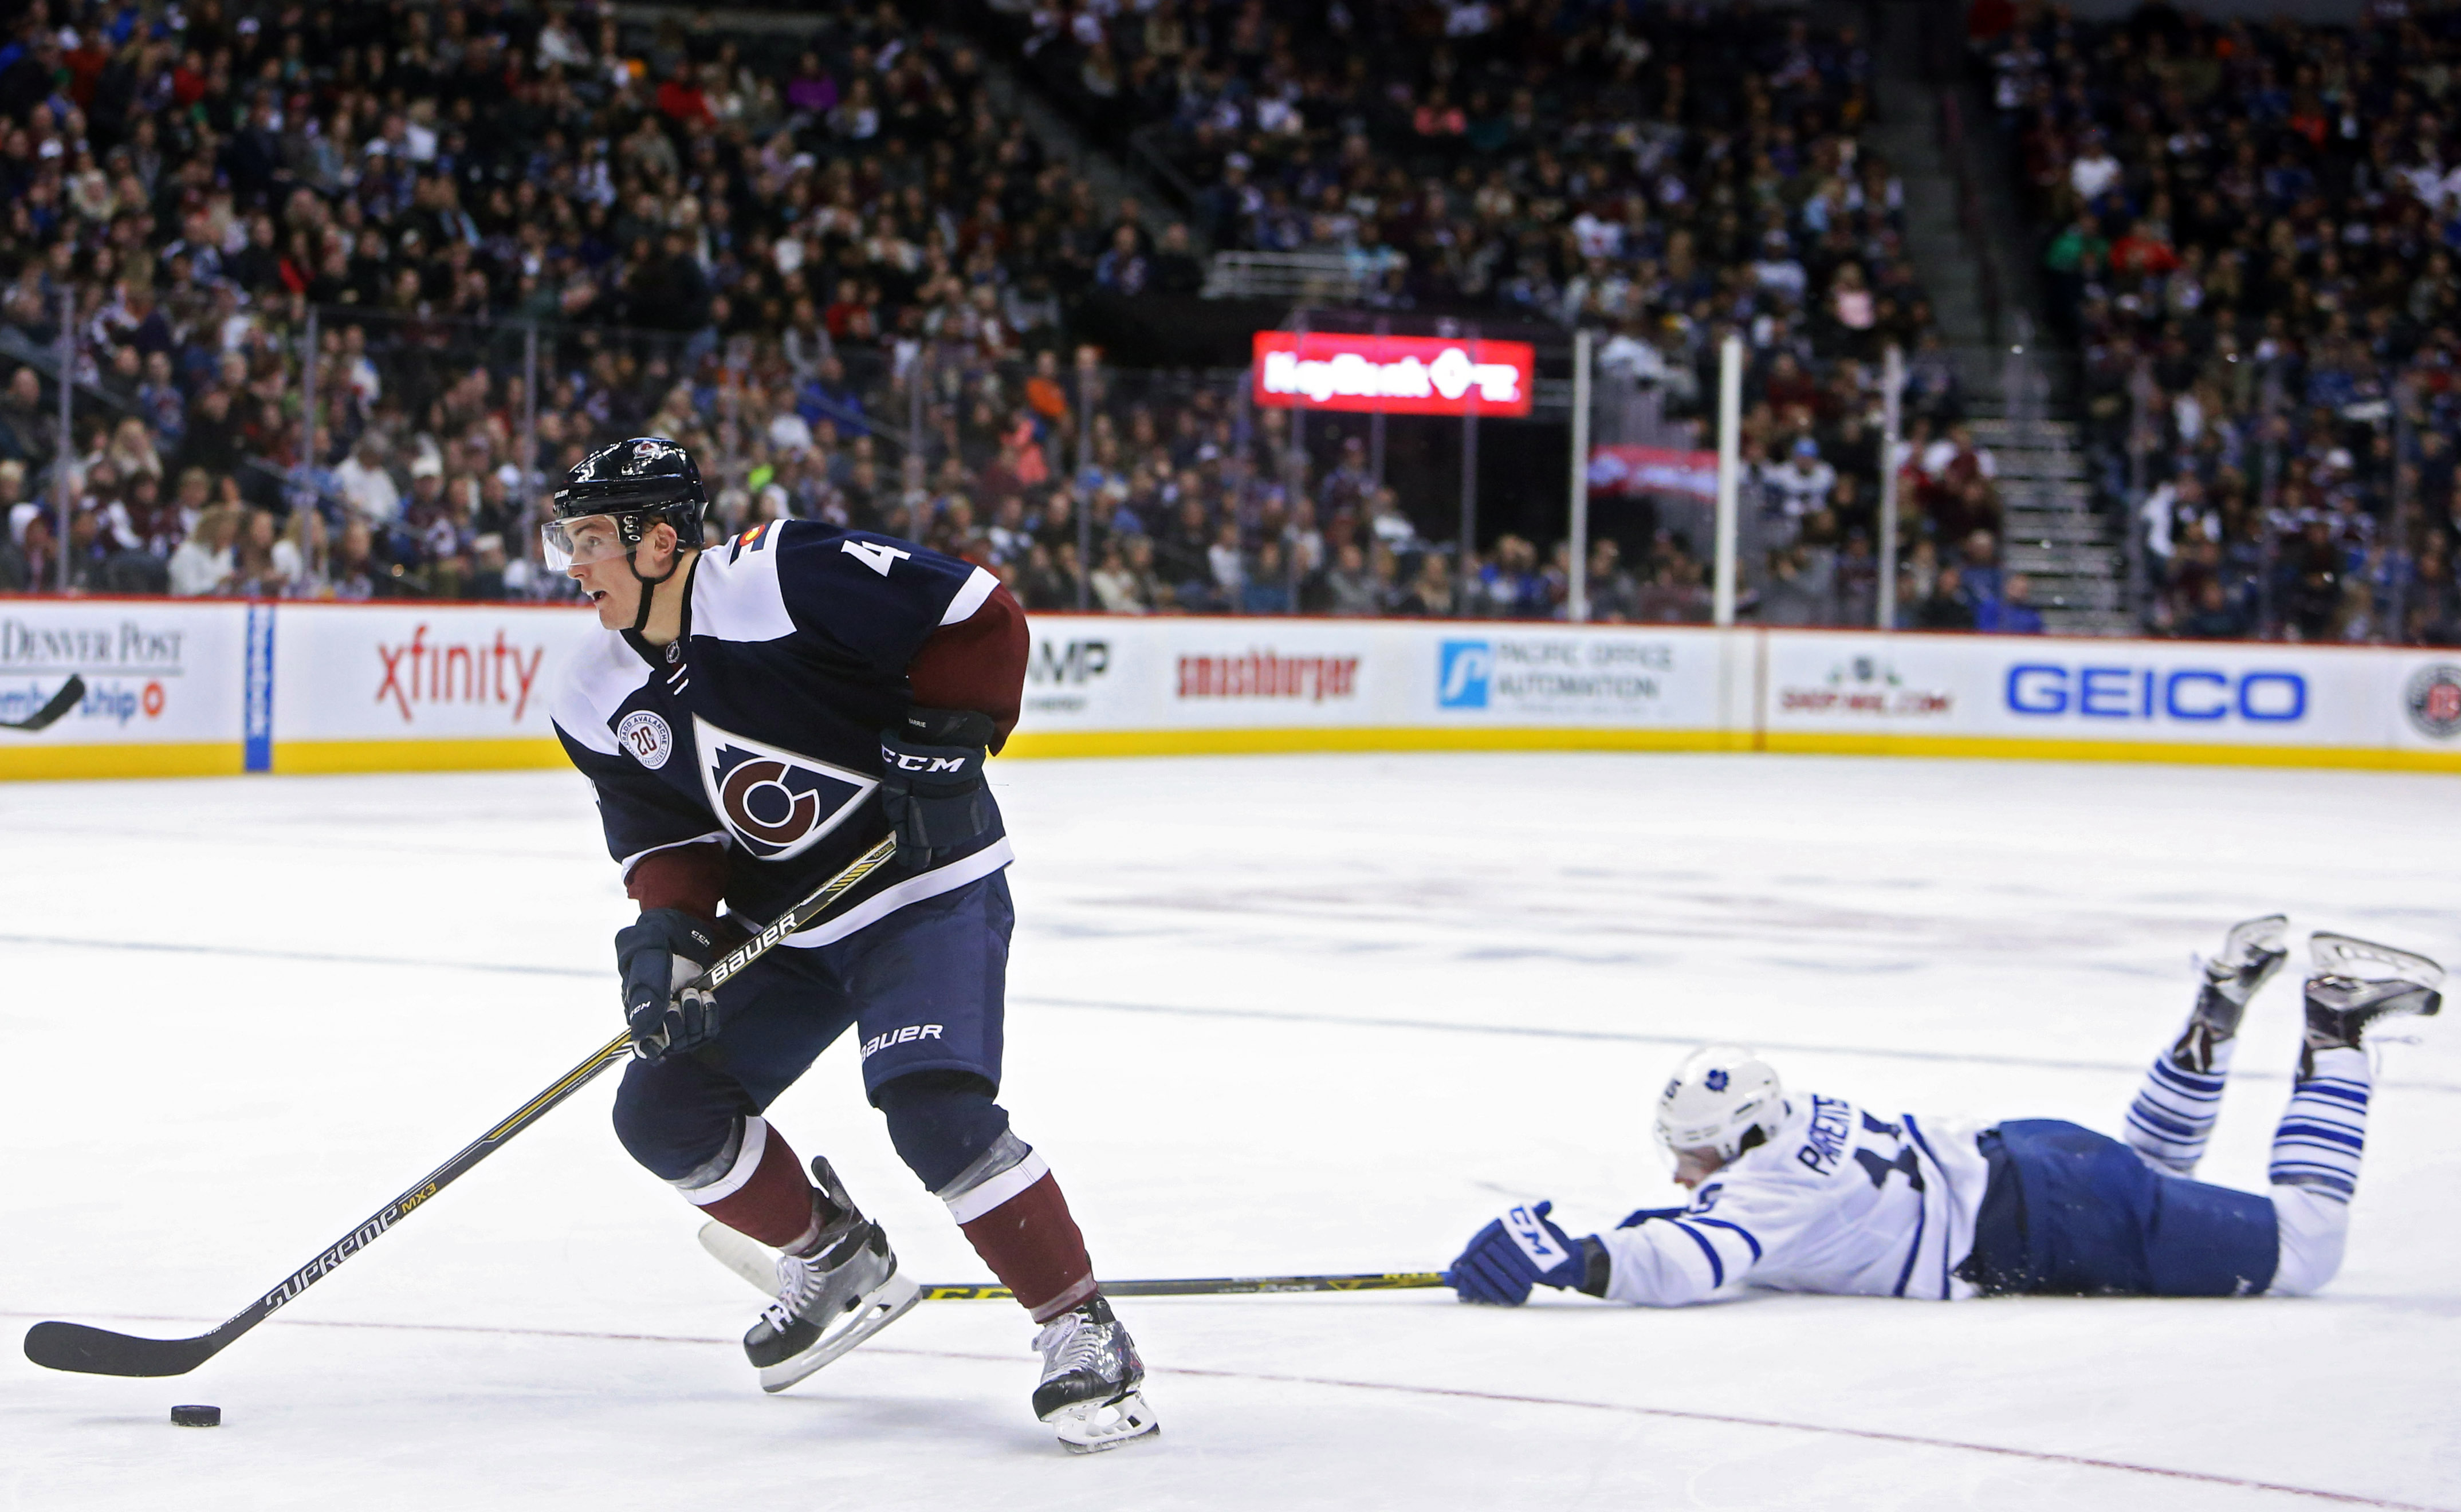 9011156-nhl-toronto-maple-leafs-at-colorado-avalanche